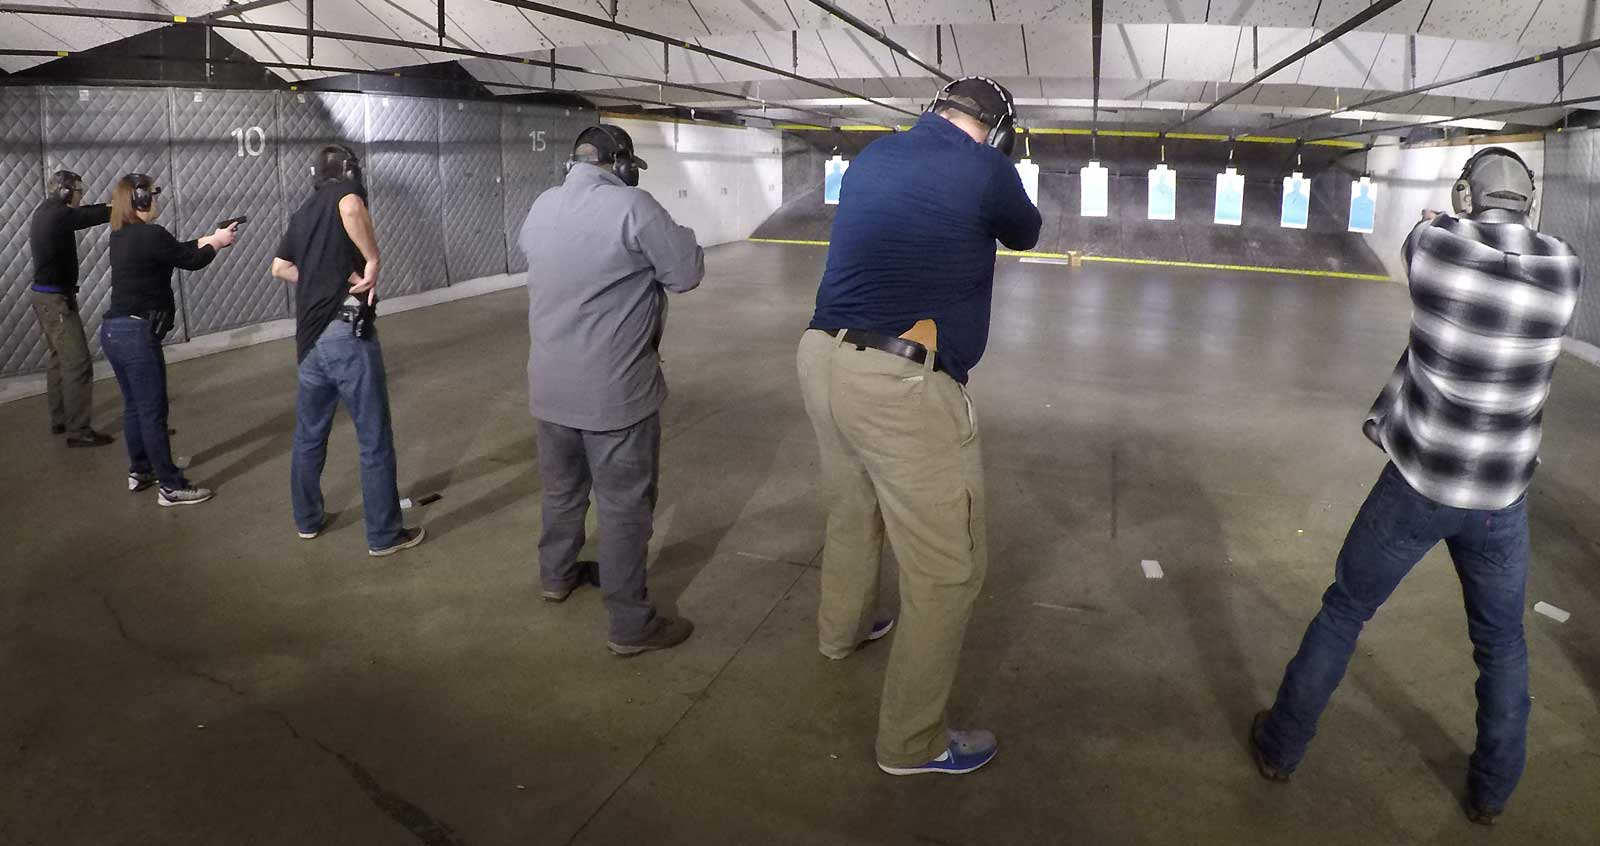 Instructing law enforcement professionals on the gun range